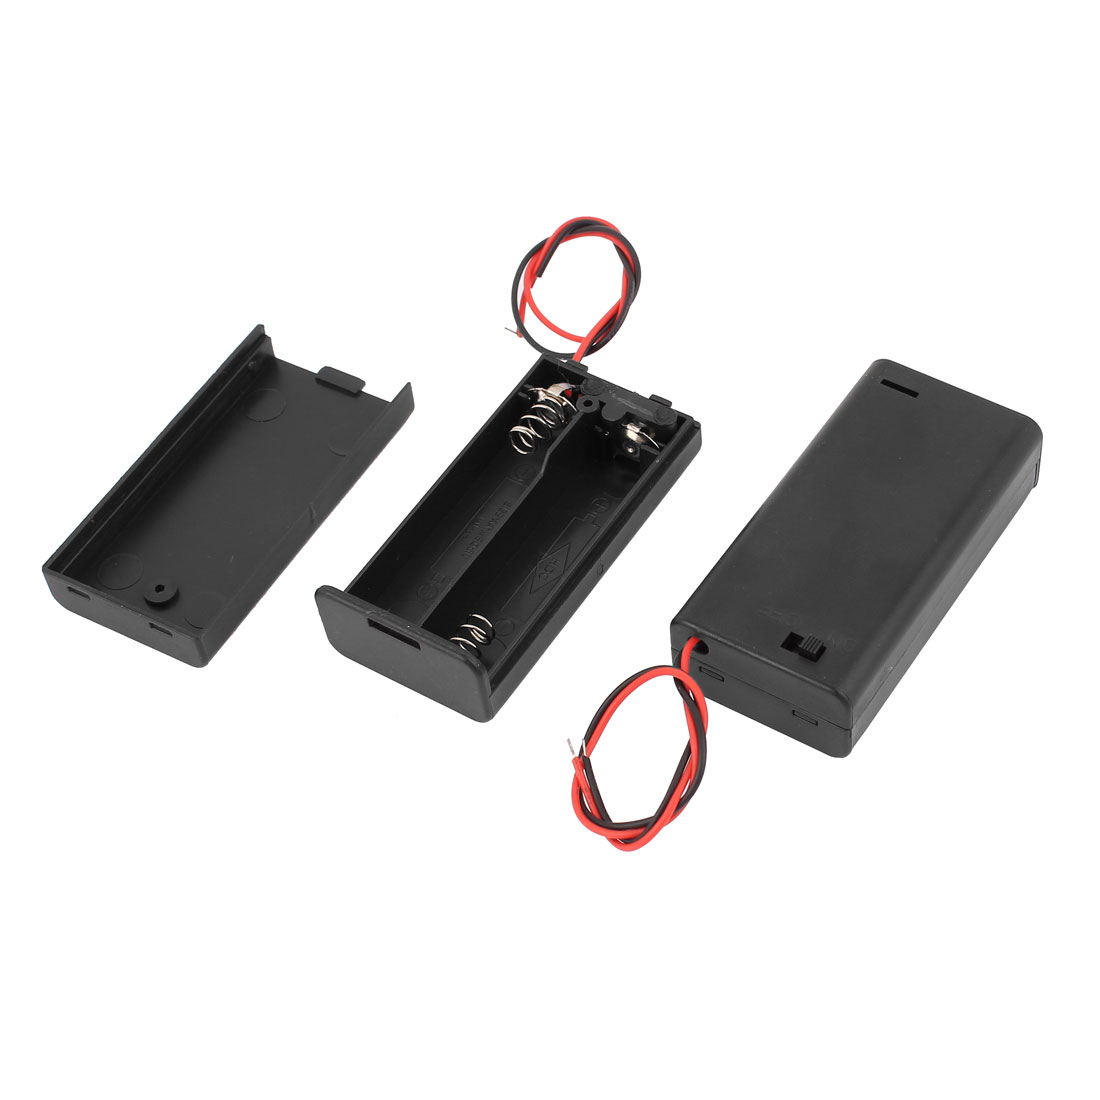 2pcs Plastic Battery Holder Case w ON/OFF Switch for 2 x 1.5V AA Batteries